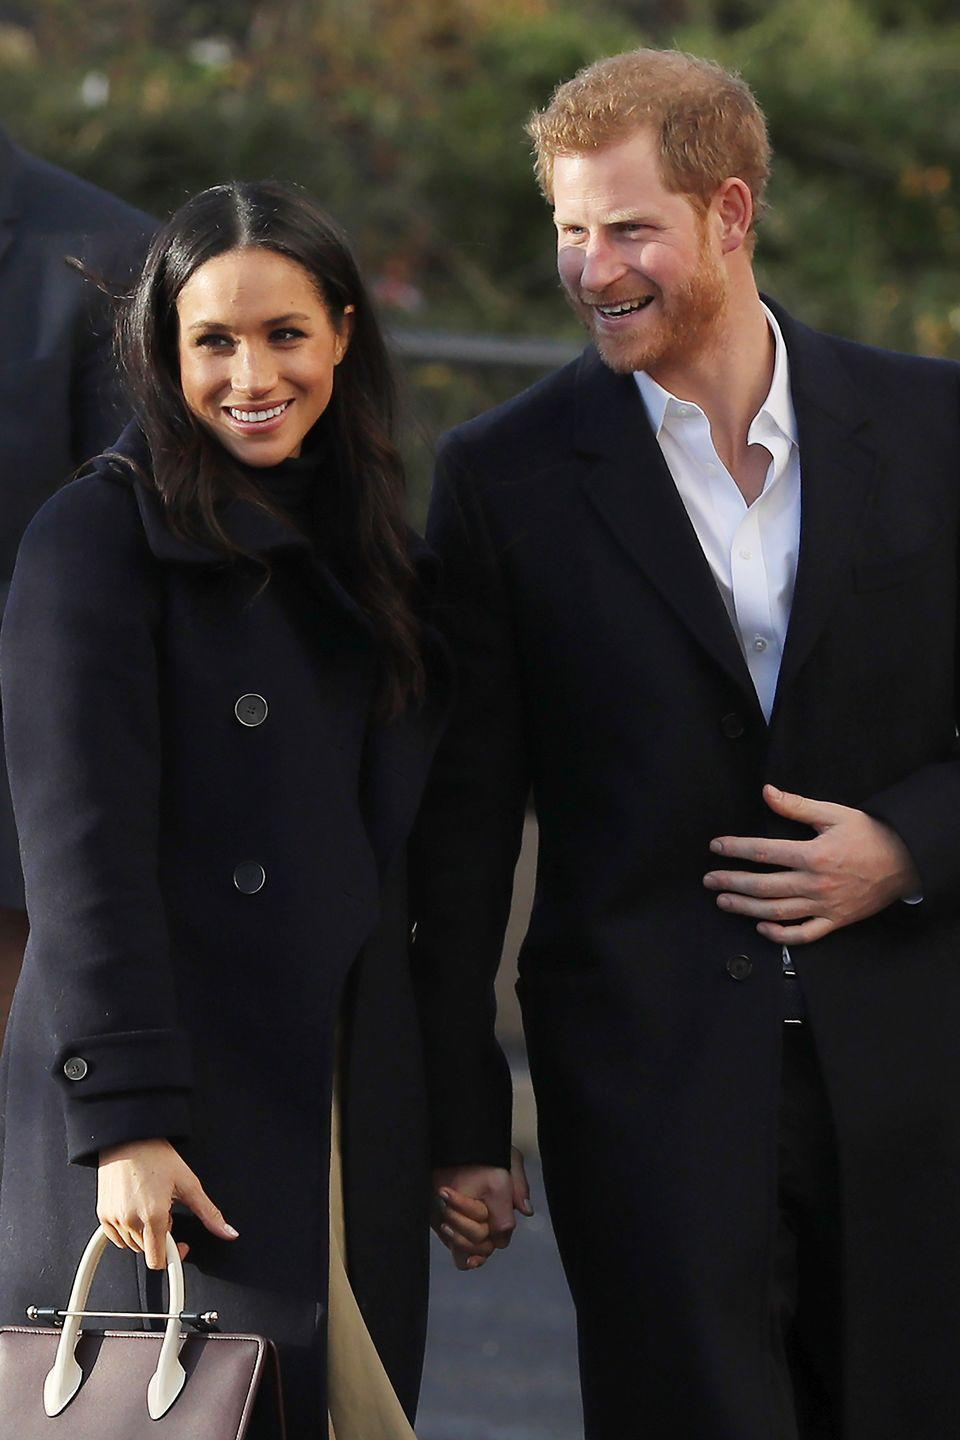 <p>Smiling to the crowd, the couple appeared genuinely glowing with love.</p>